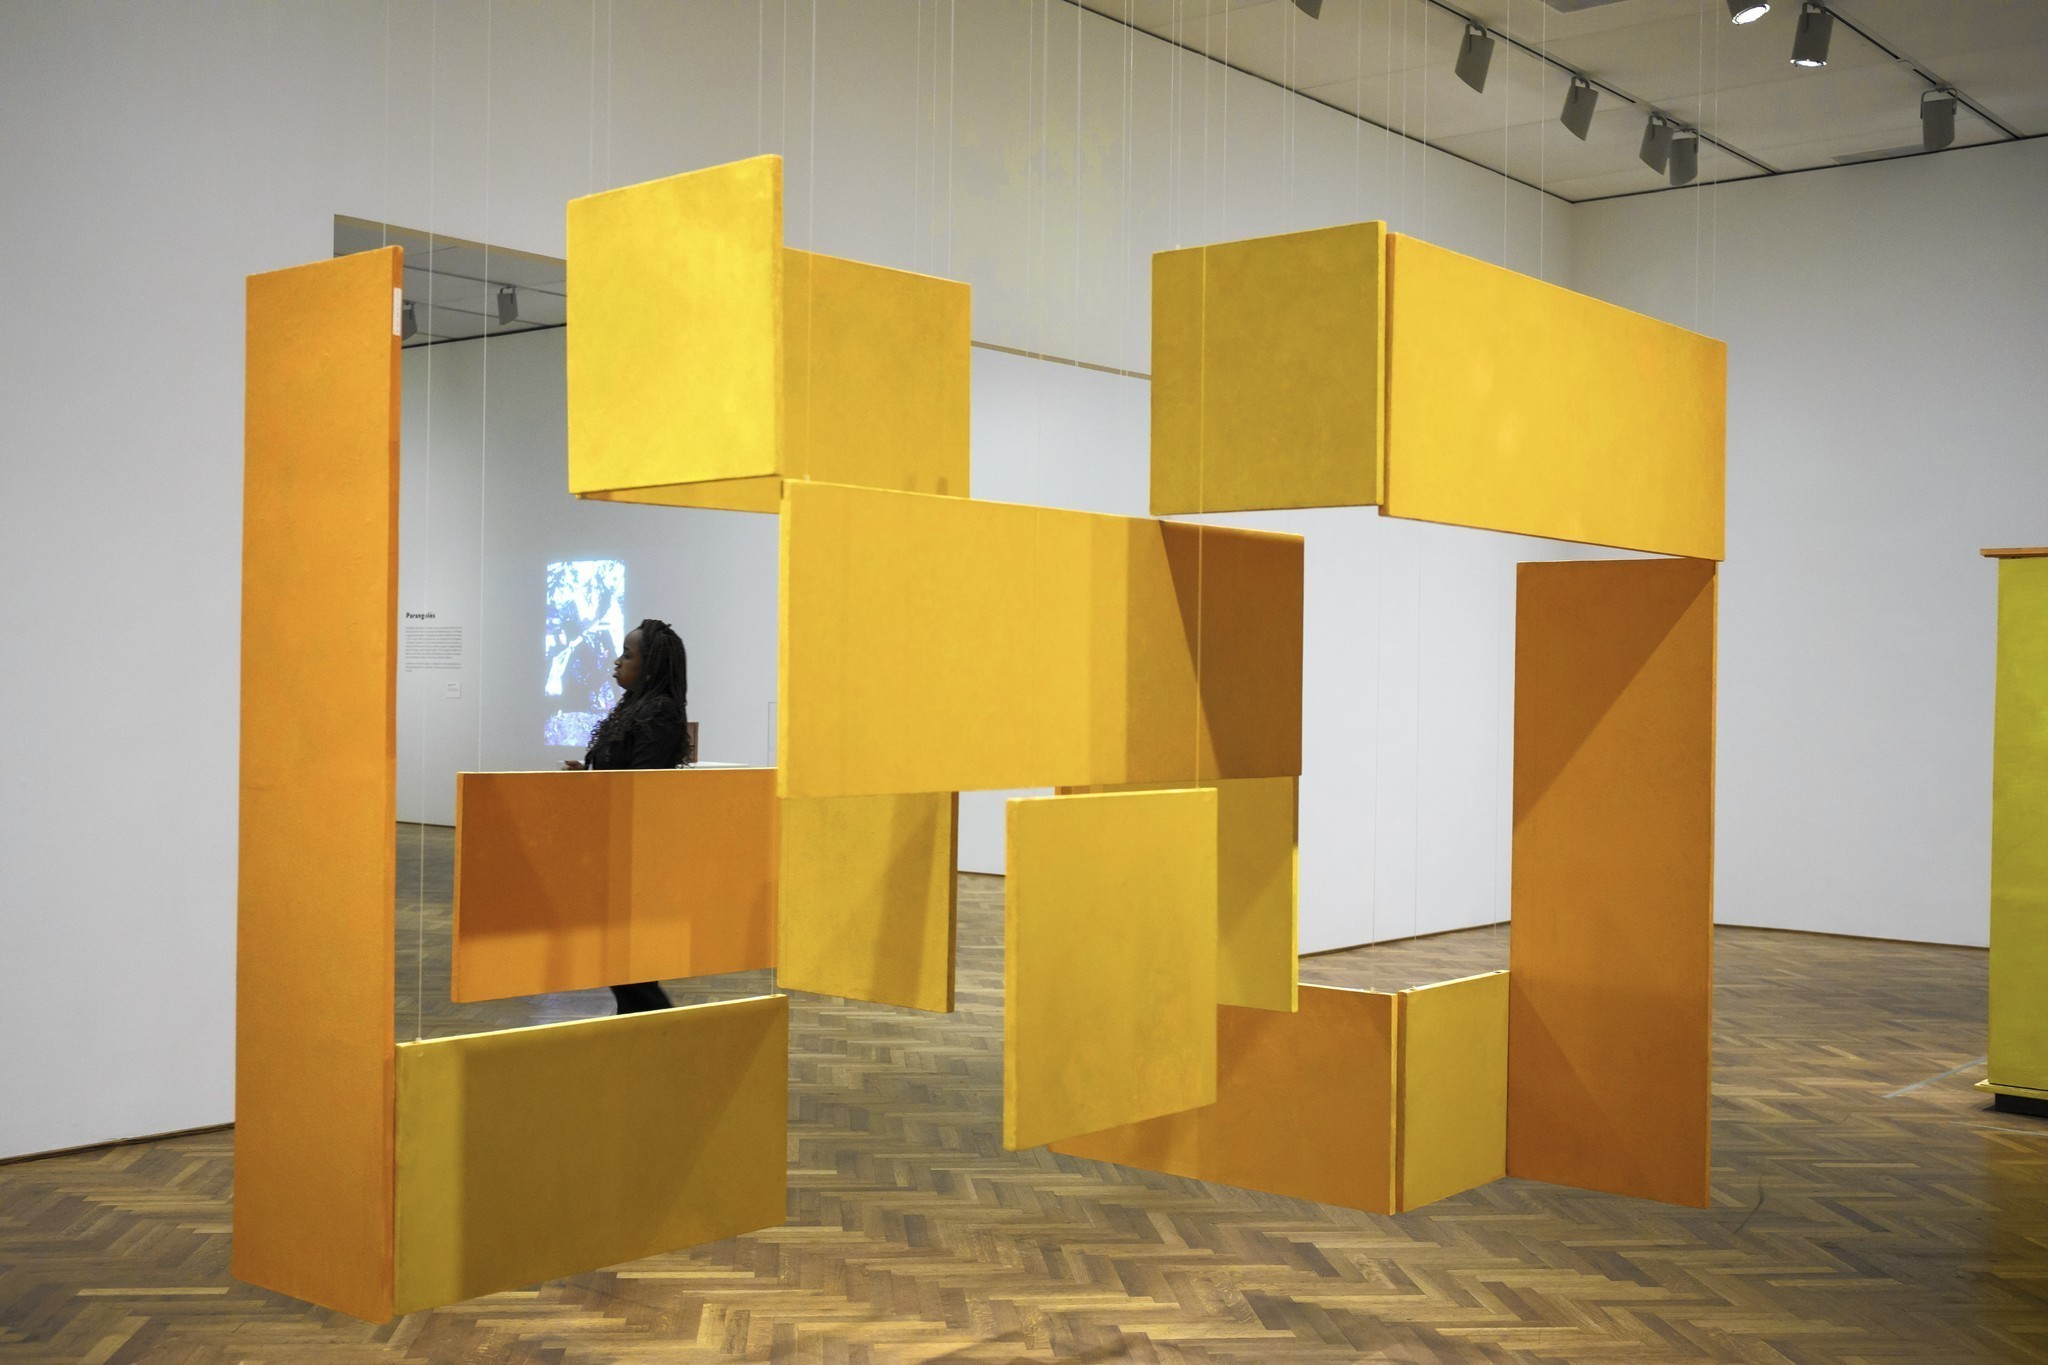 Helio Oiticicas Show Is Sensory Overload In All The Best Ways Chicago Tribune